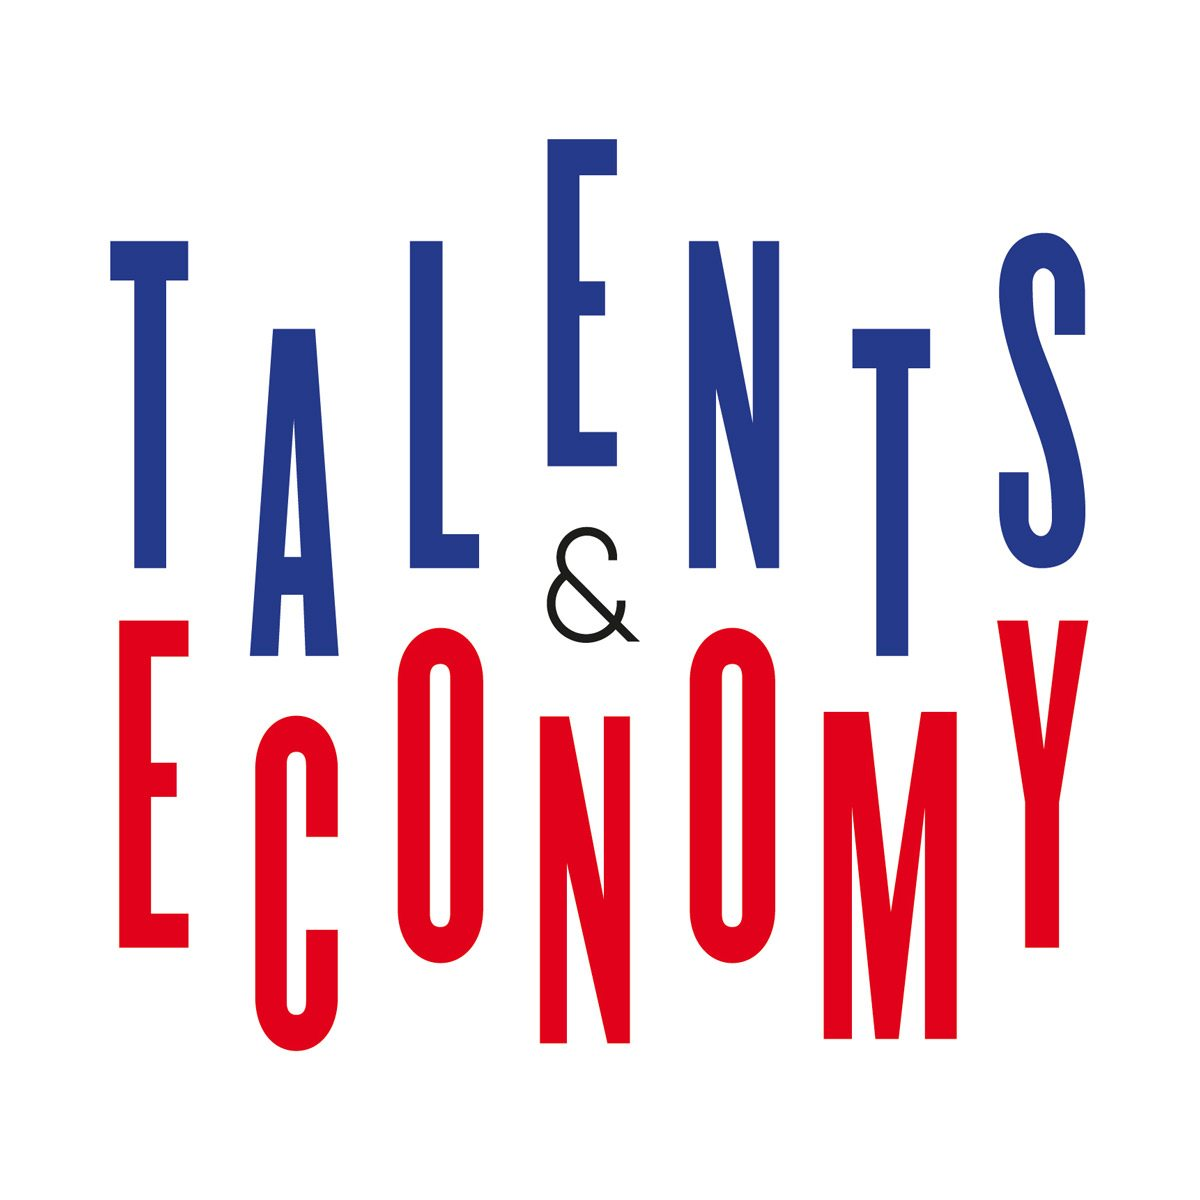 France Design 2015 design Ich&Kar Talents & Economy